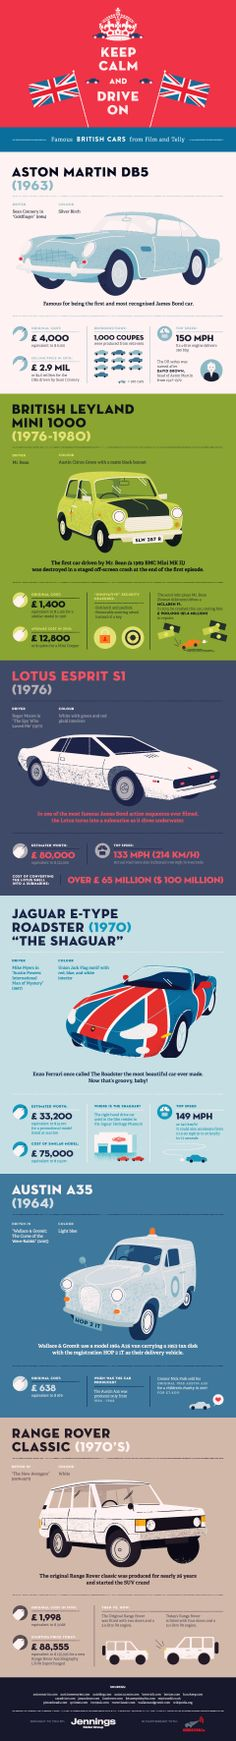 Keep Calm And Drive On: Famous British Cars From Film And Telly [INFOGRAPHIC] #British#cars